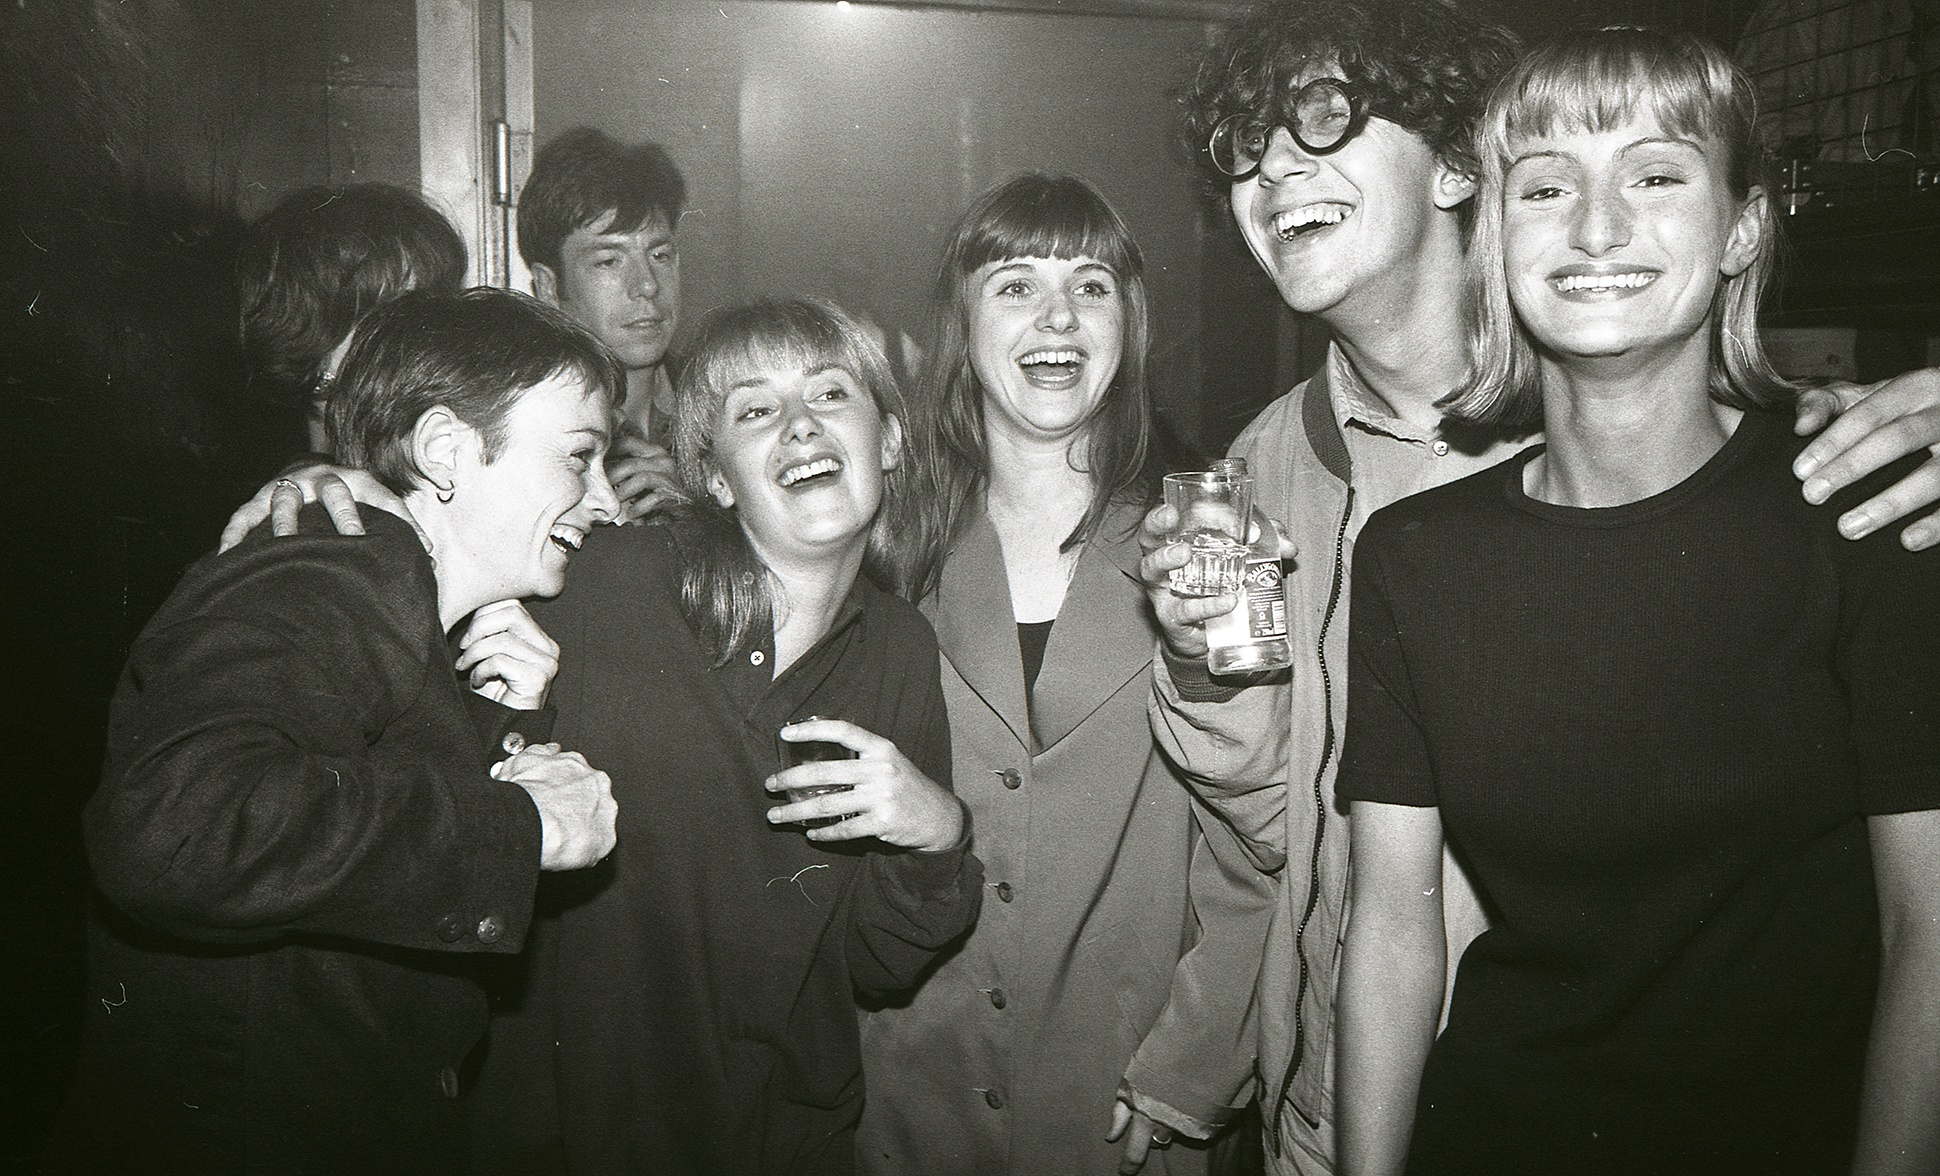 Group of Indie clubbers on a night out at The Boardwalk, Manchester, 1990 by Peter Walsh